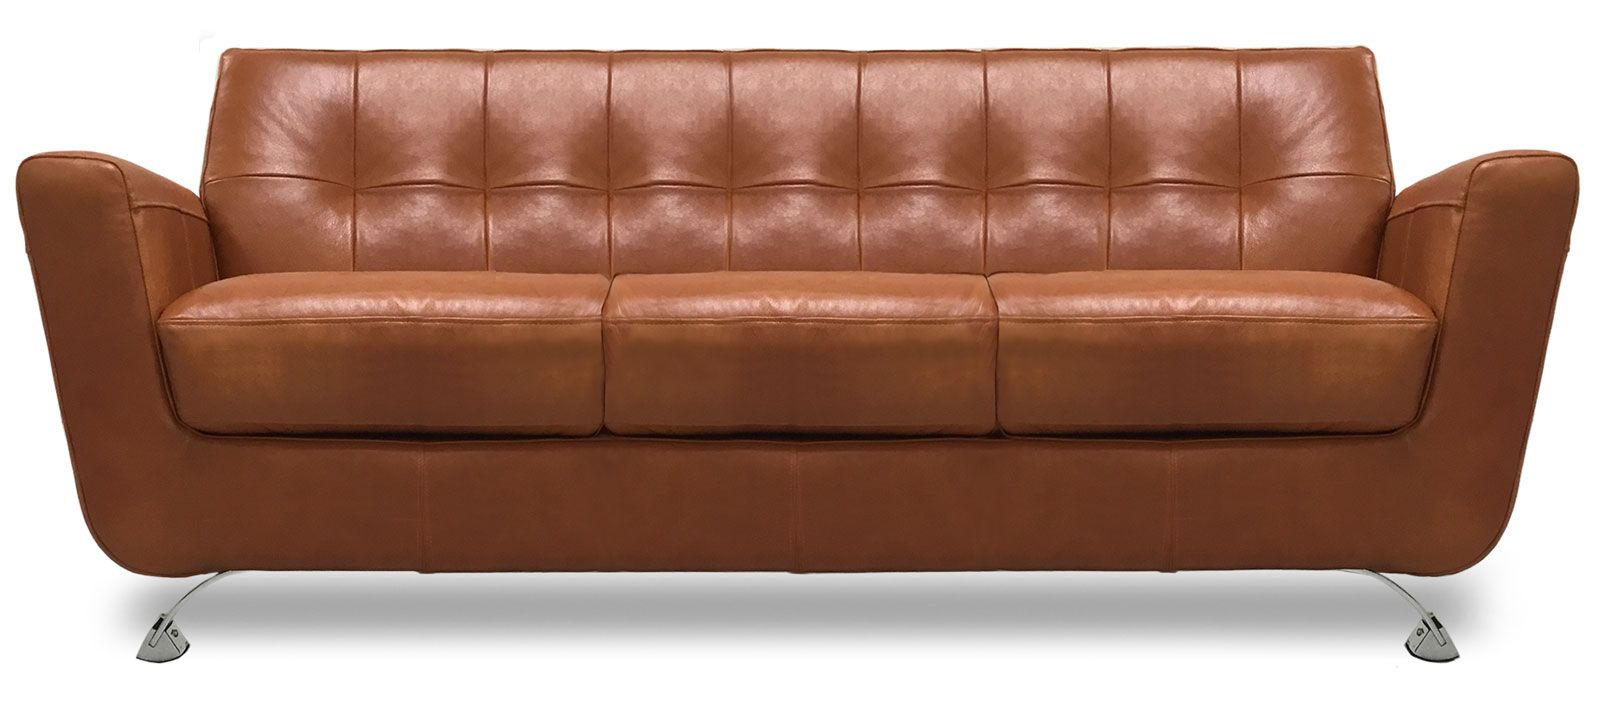 Leather sofa and chair with ottoman sofa menzilperde net for Sofa company